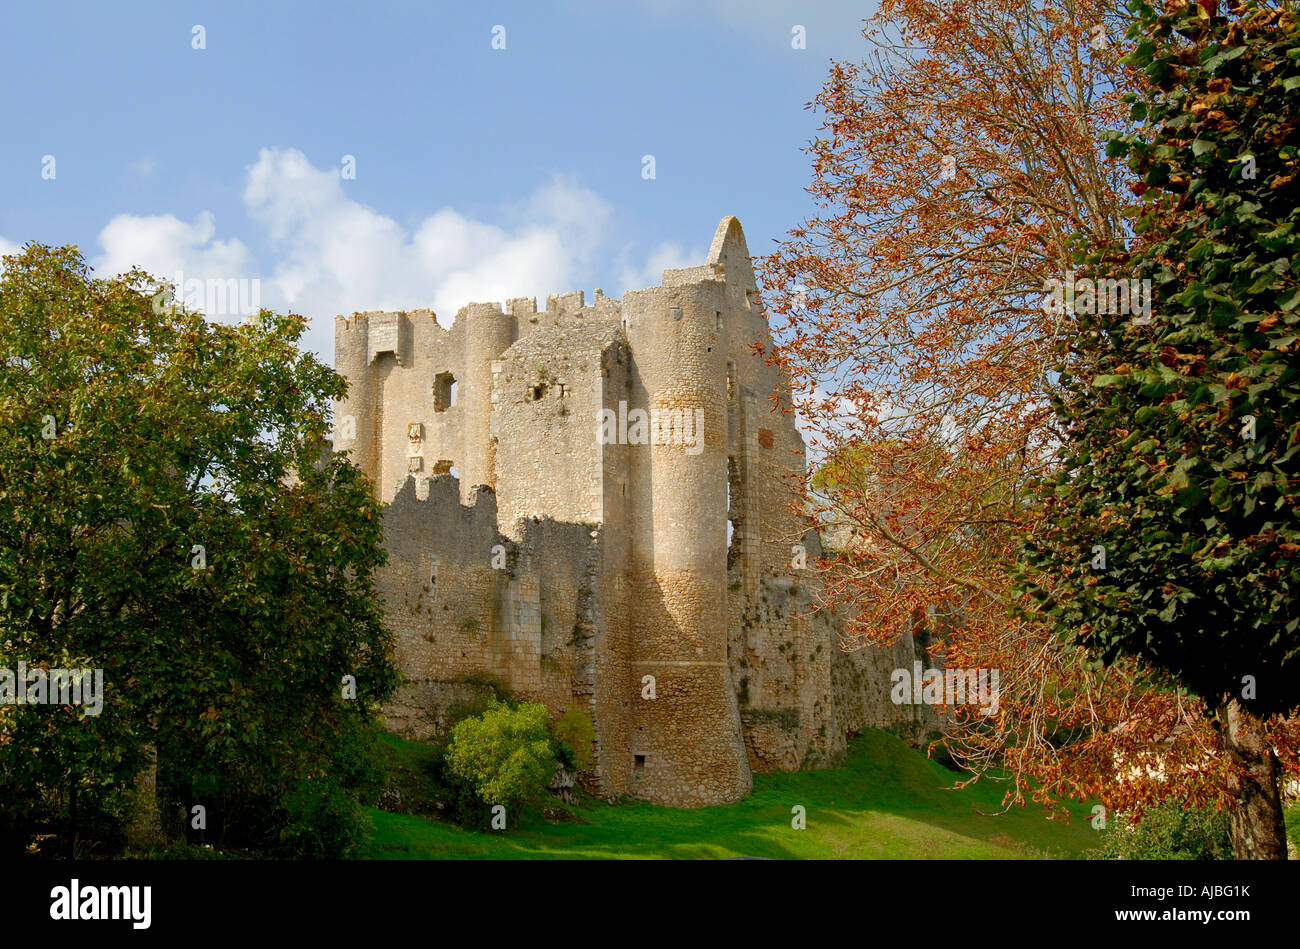 Ruined chateau, Angles-sur-l'Anglin (86260), Vienne, France. - Stock Image